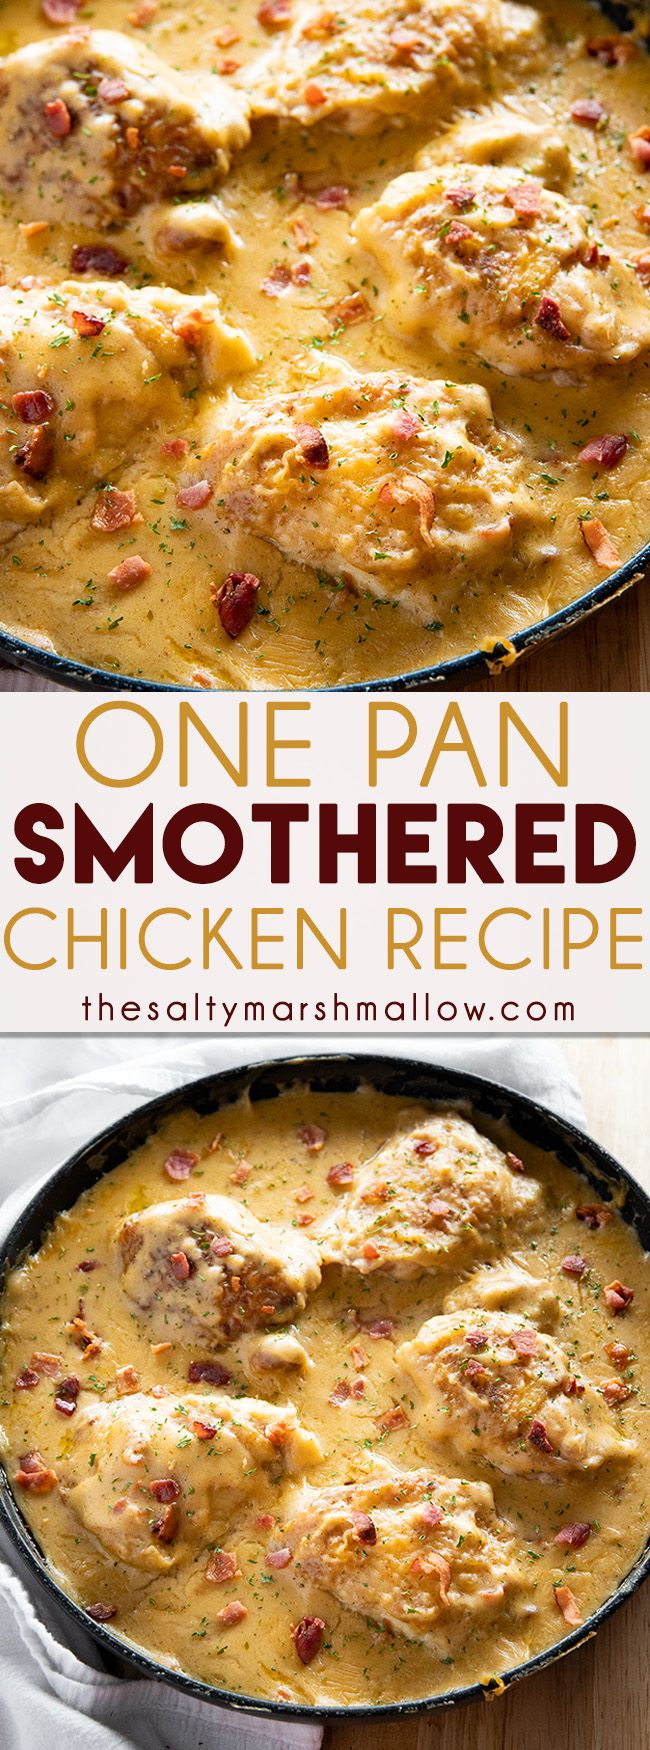 One Pan Smothered Chicken #onepandinnerschicken